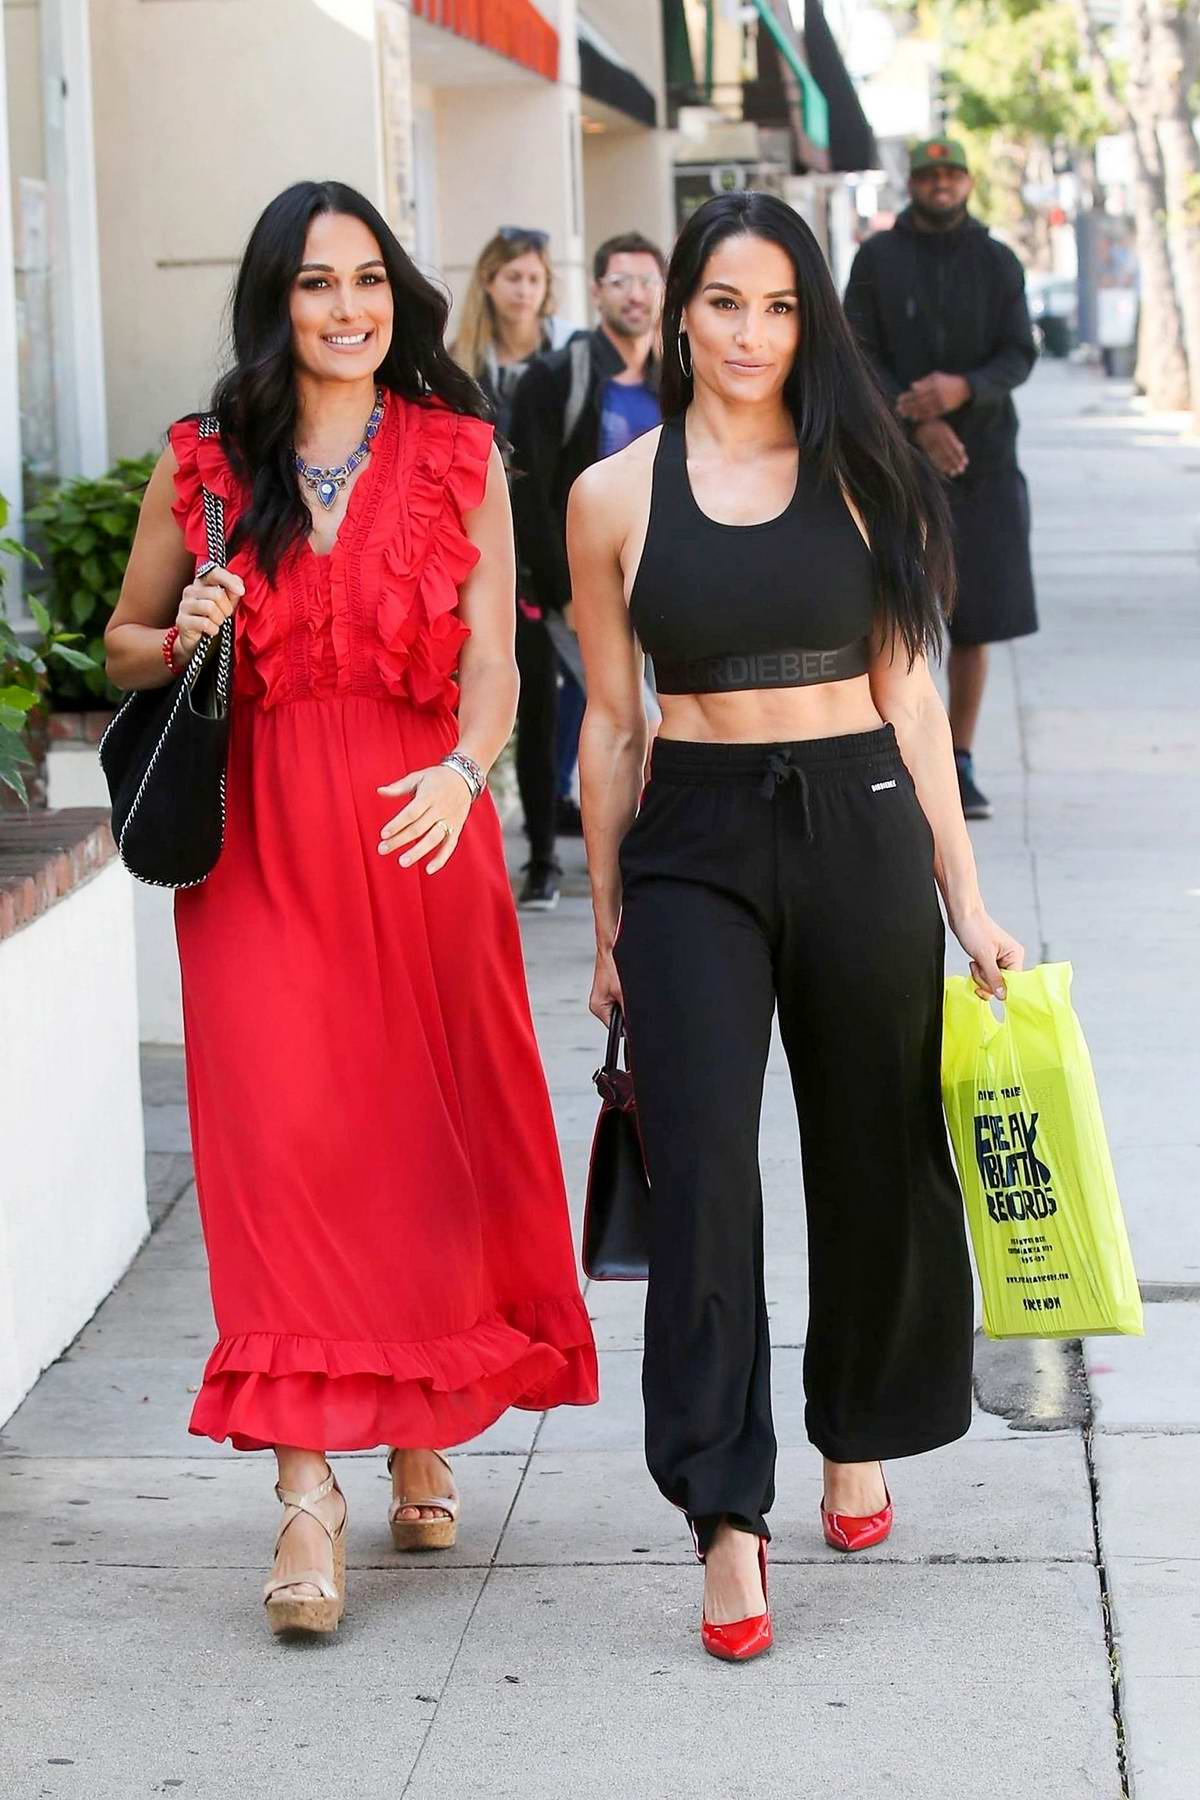 Nikki and Brie Bella stepped out for a day of shopping on Ventura Blvd in Studio City, Los Angeles